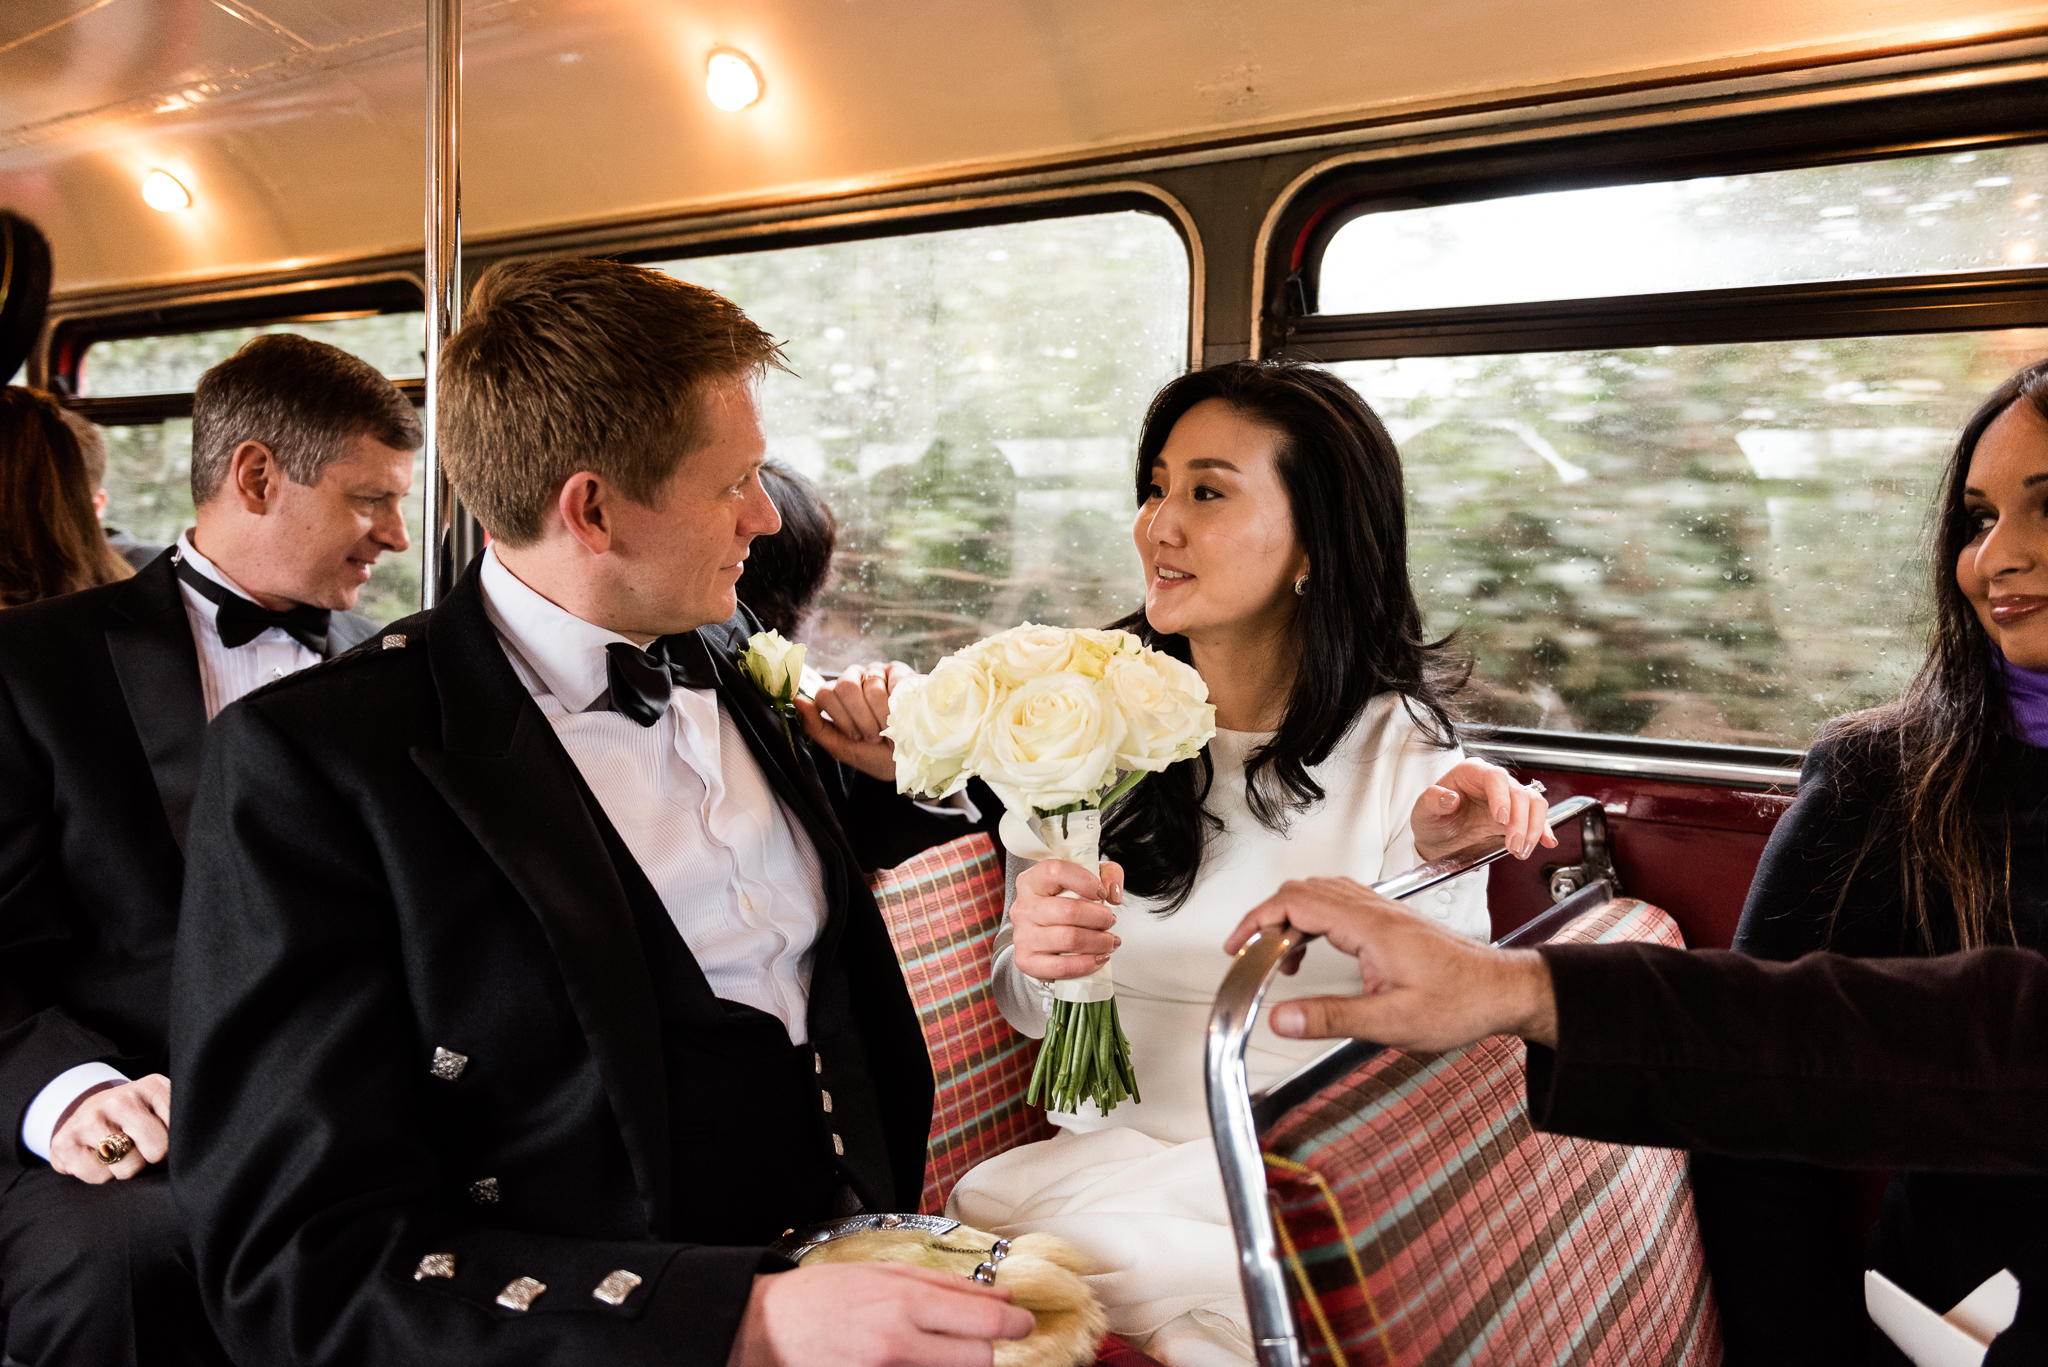 English Winter Wedding Photography at Somerford Hall, Staffordshire Red Bus Double Decker Kilts Bagpiper-37.jpg